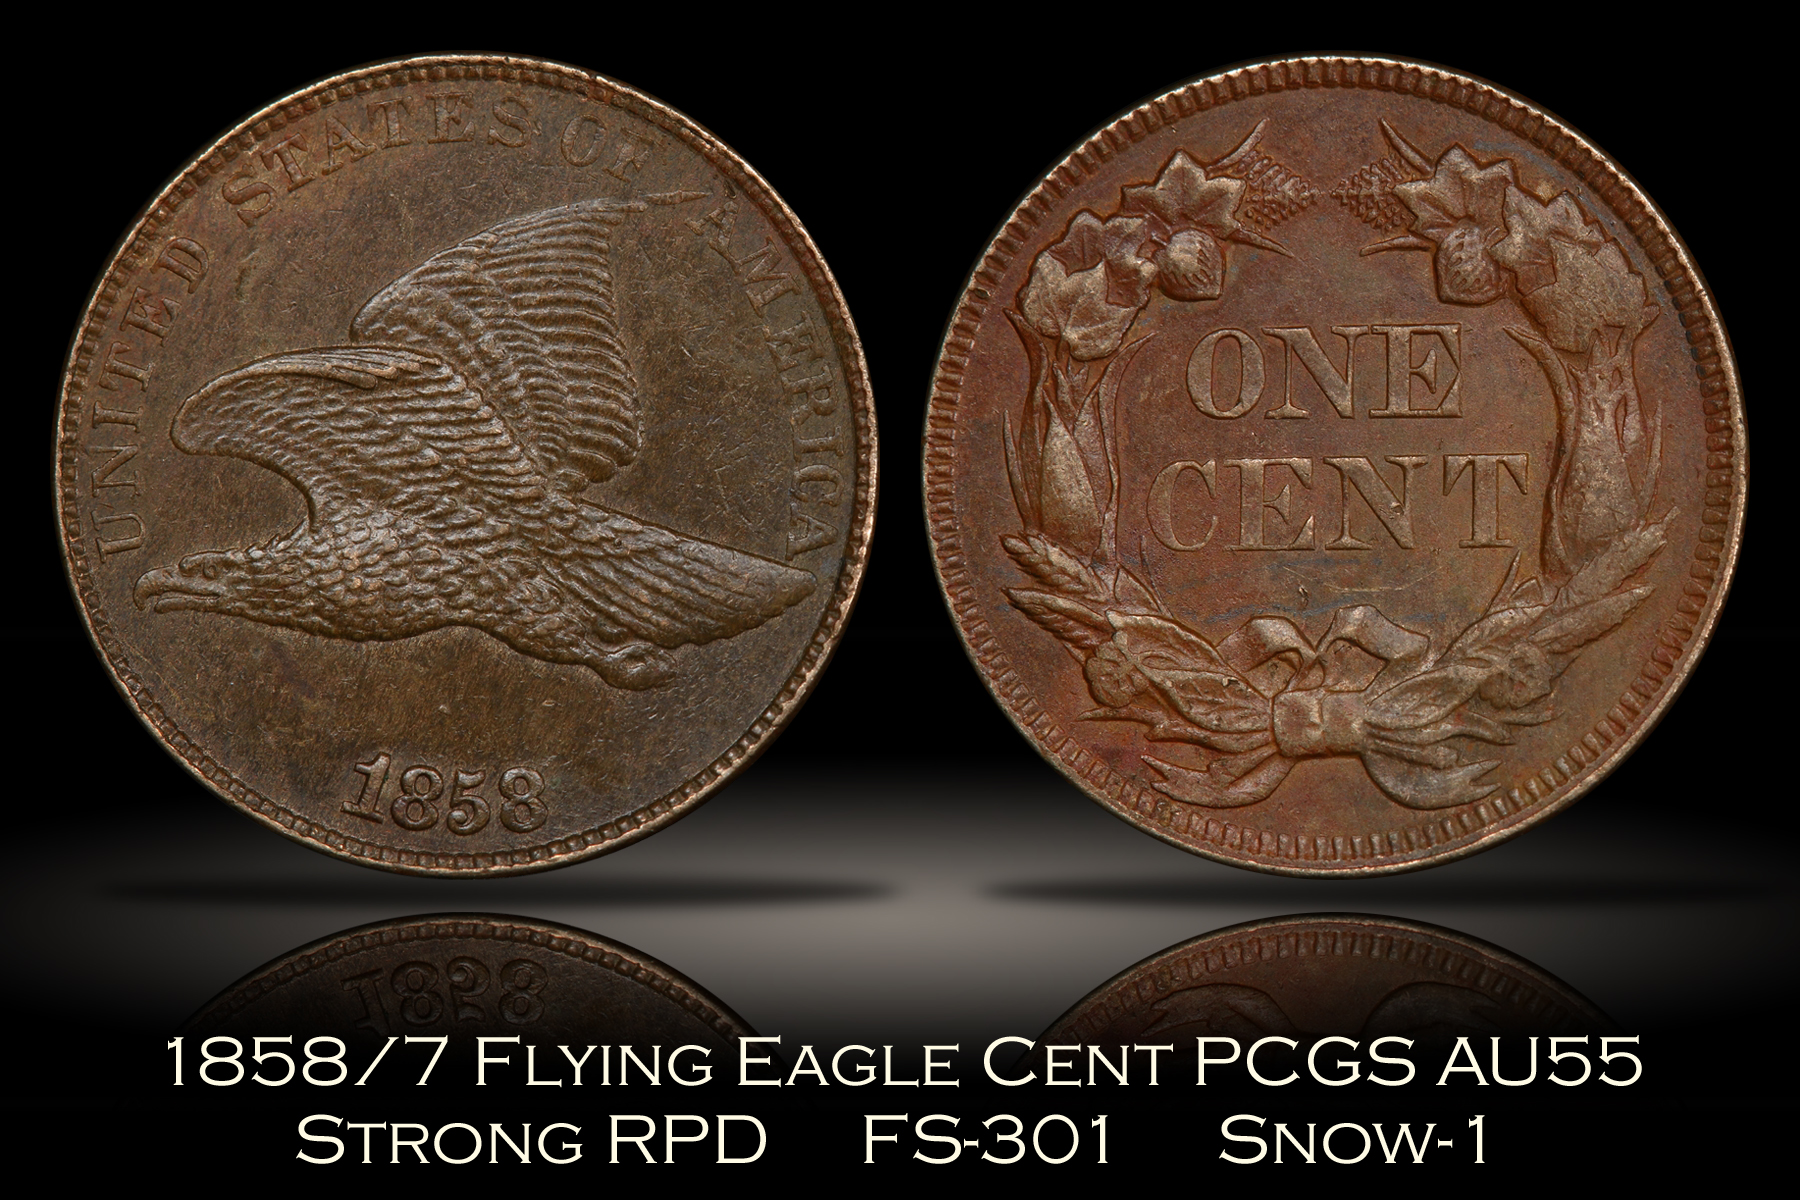 1858/7 Flying Eagle Cent Strong Overdate FS-301 S-1 PCGS AU55